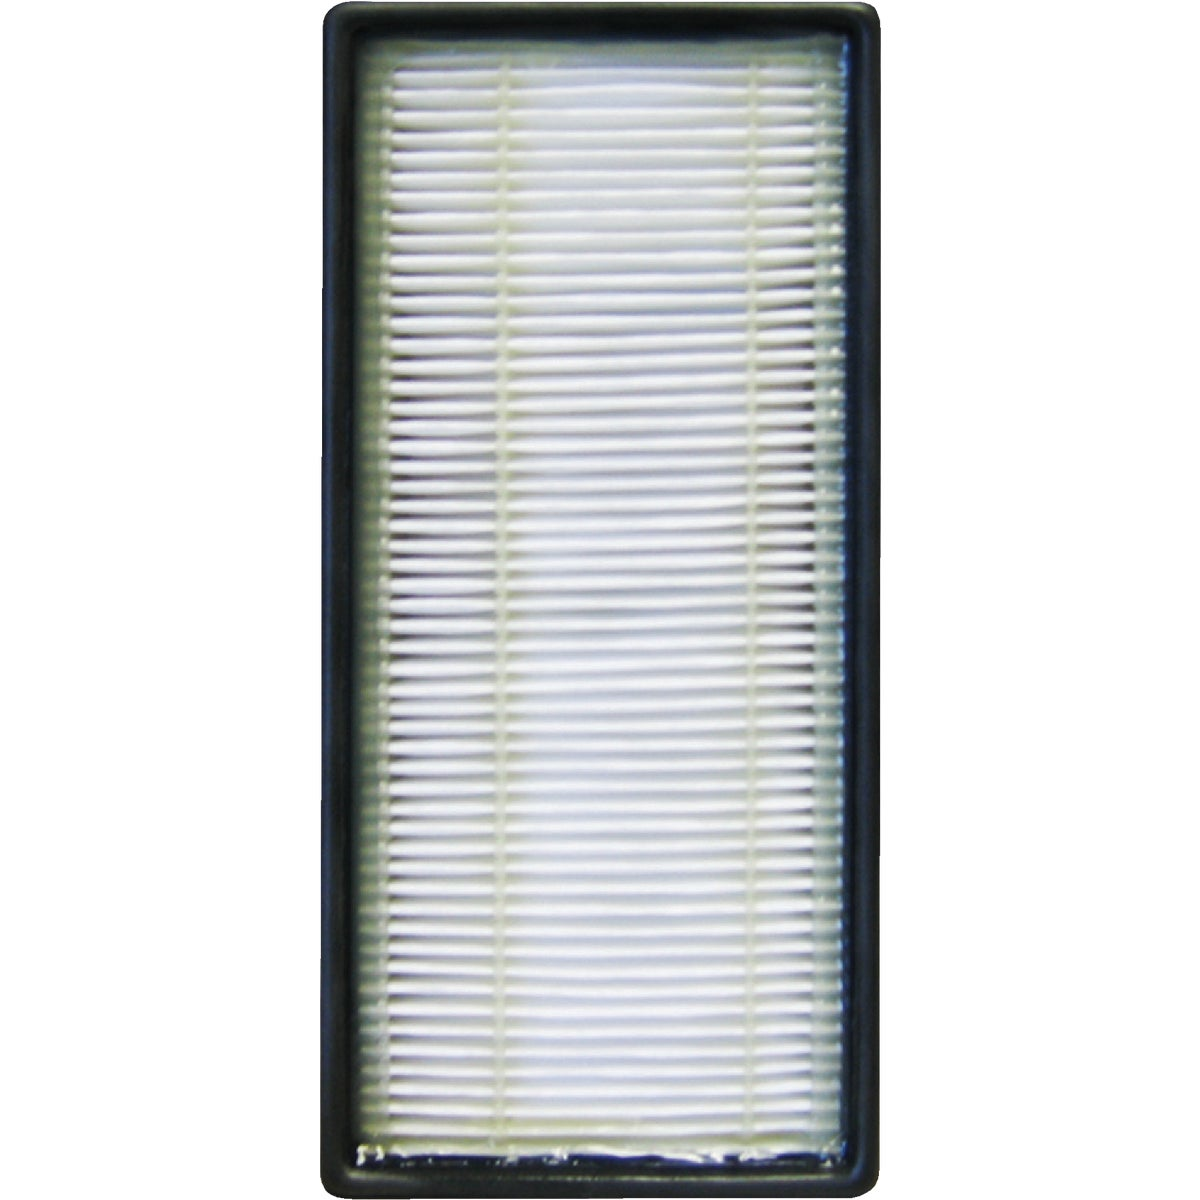 HEPA FILTER - HRF-C1 by Kaz Home Environment